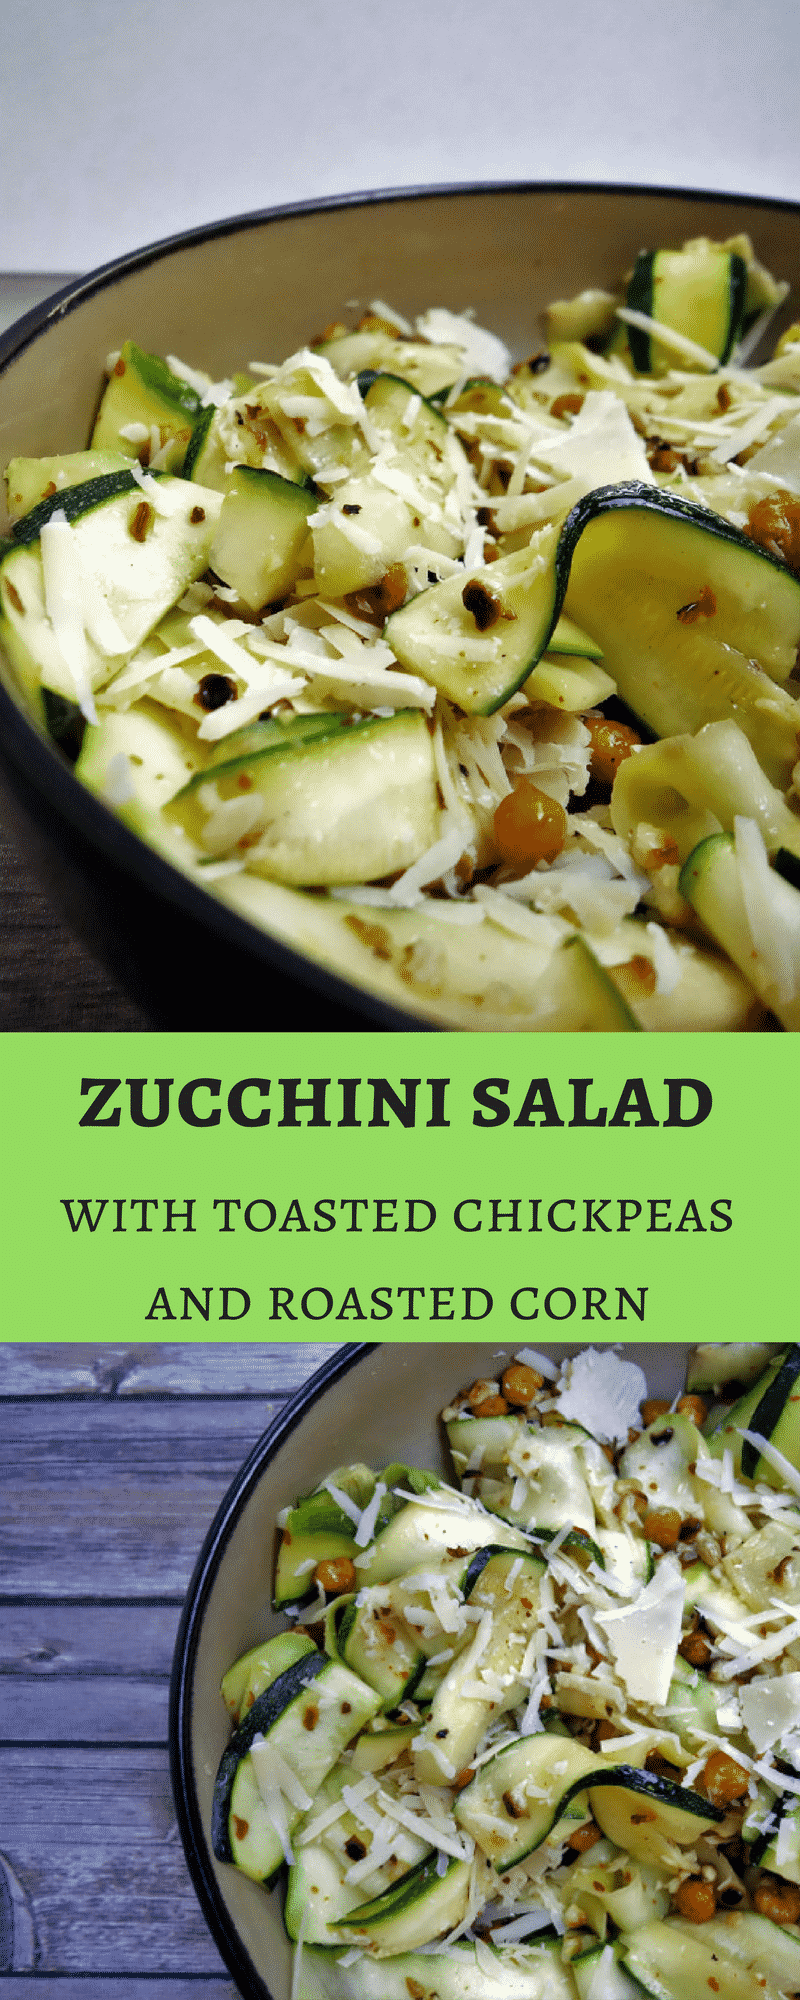 This amazing Zucchini Salad with Toasted Chickpeas and Parmesan Cheese is healthy & easy to make!healthy salad | zucchini salad | fresh lemon and zucchini | toasted chickpeas | parmesan and zucchini salad | salad sundays | lemon marinated zucchini